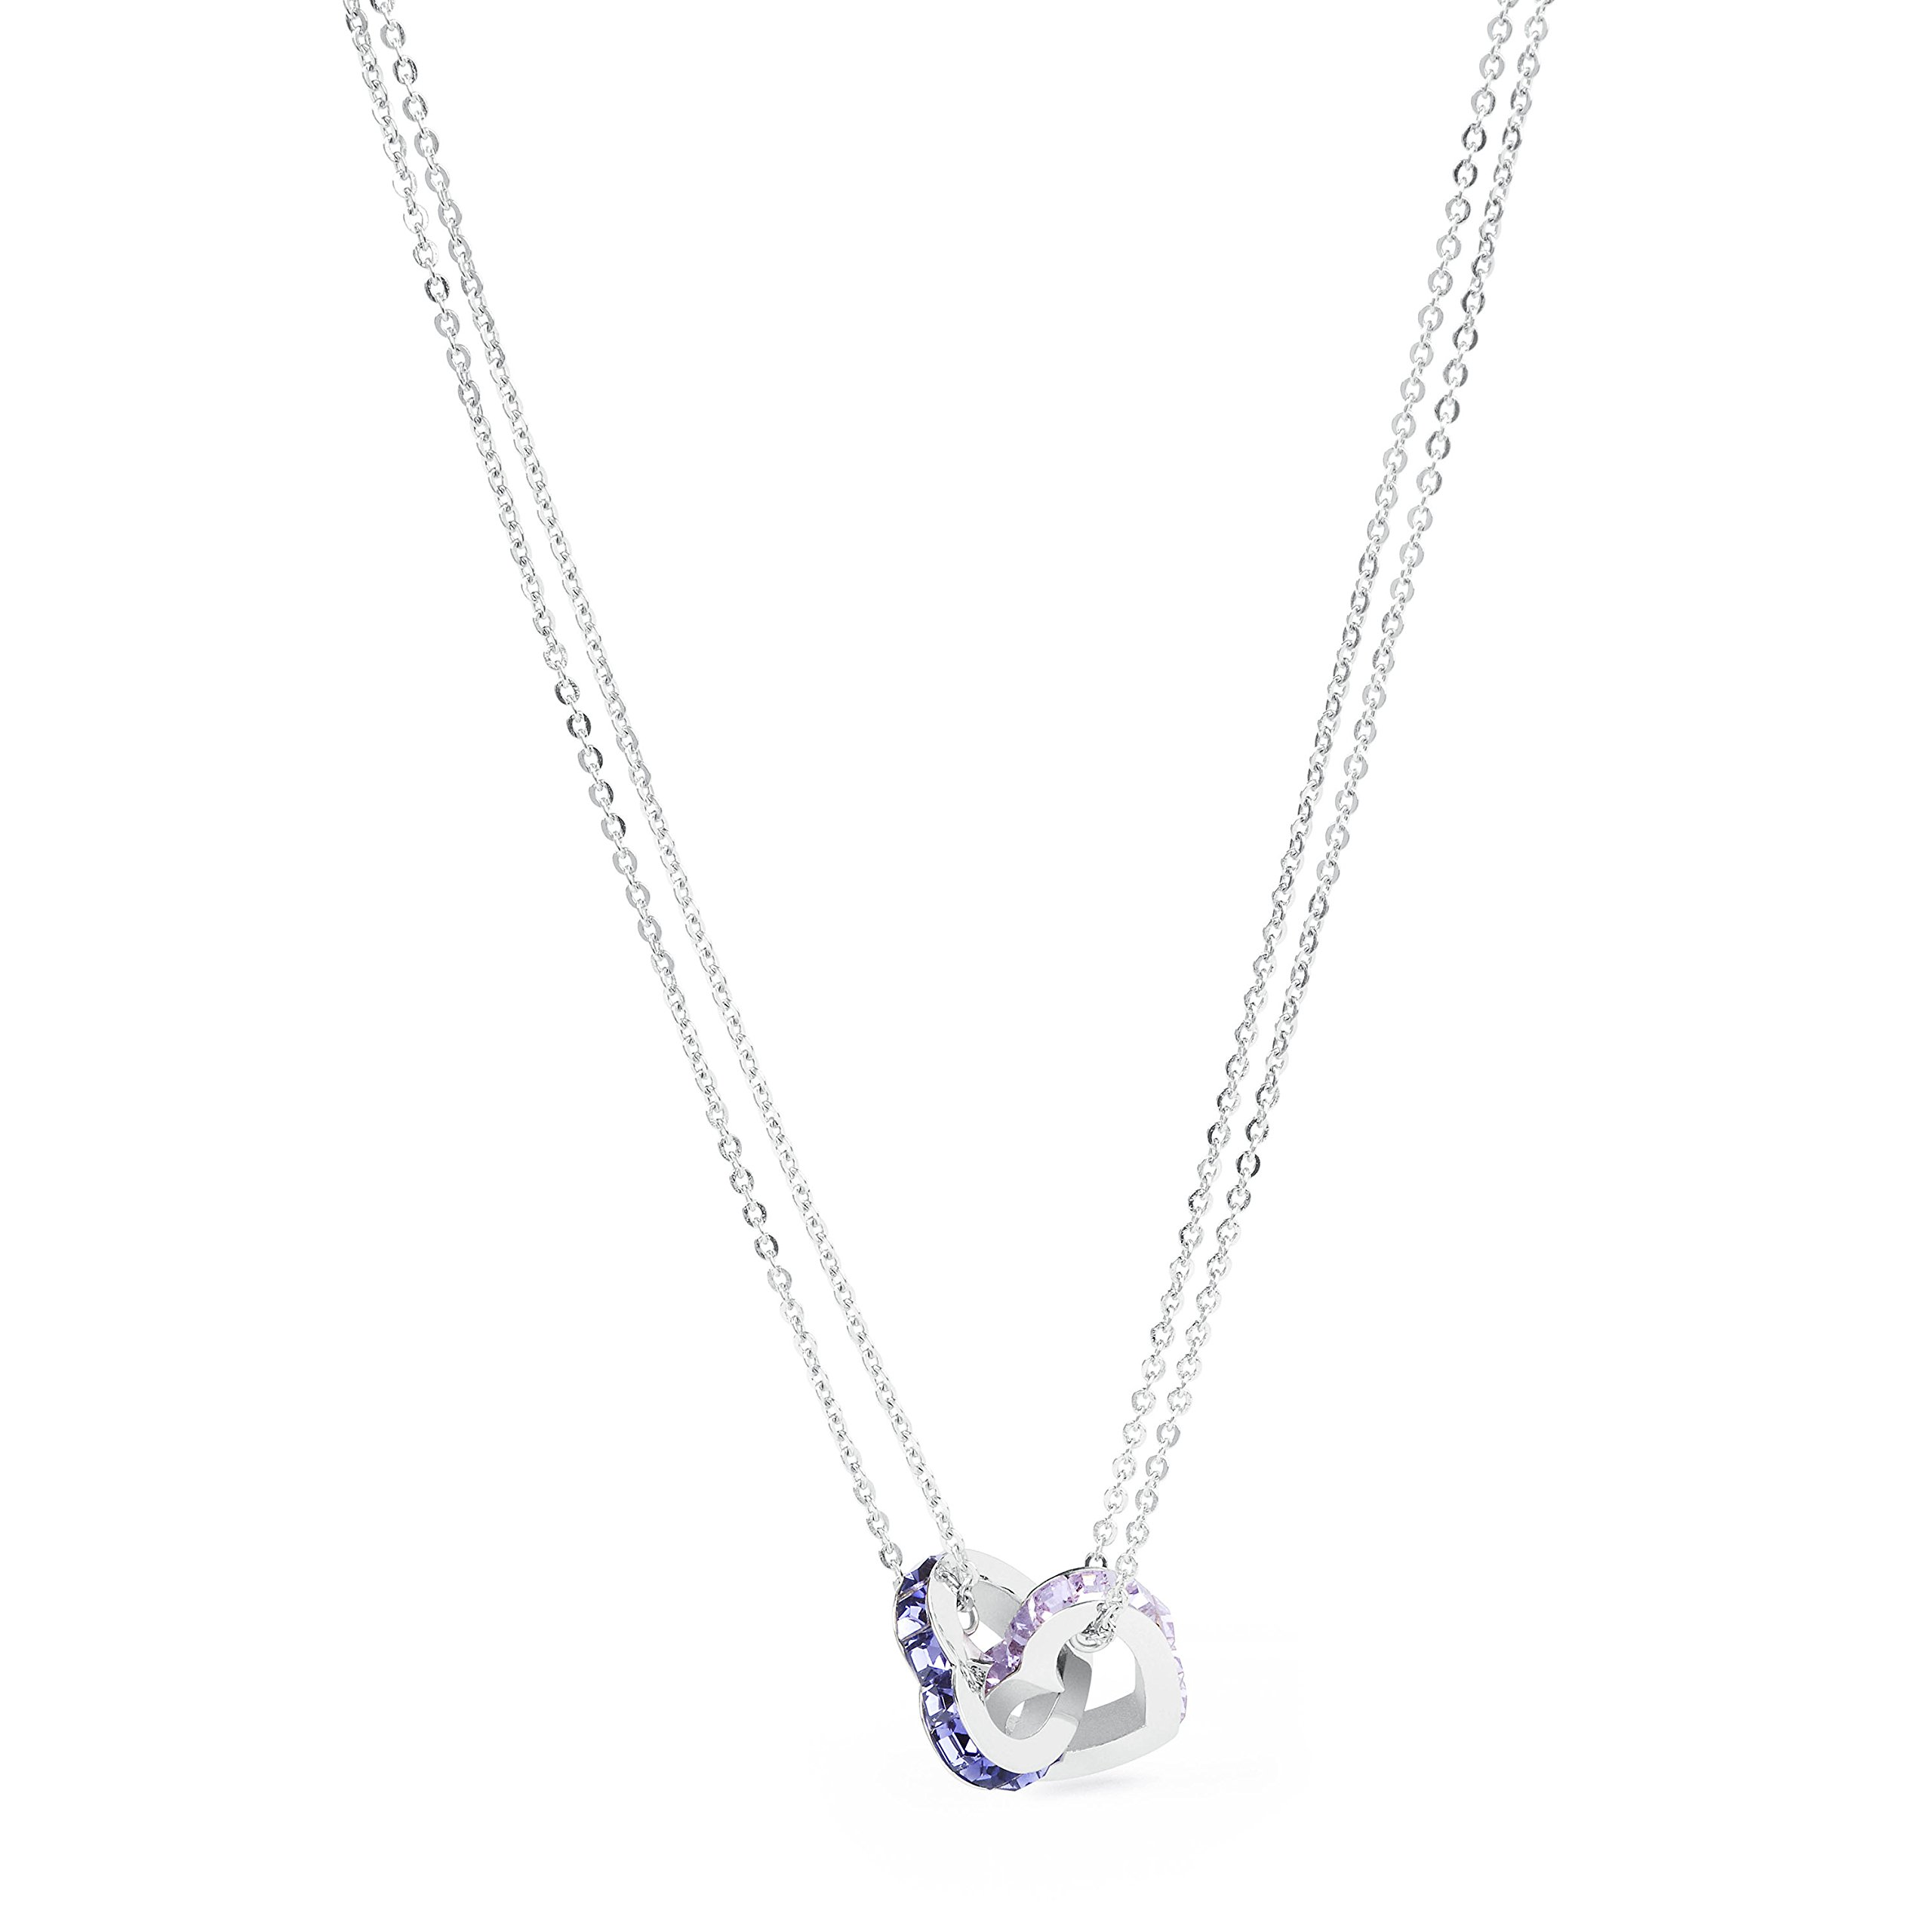 Brosway Romeo and Juliet Love Edition Necklace with Swarovski Crystals in Violet and Pink, 17.72''